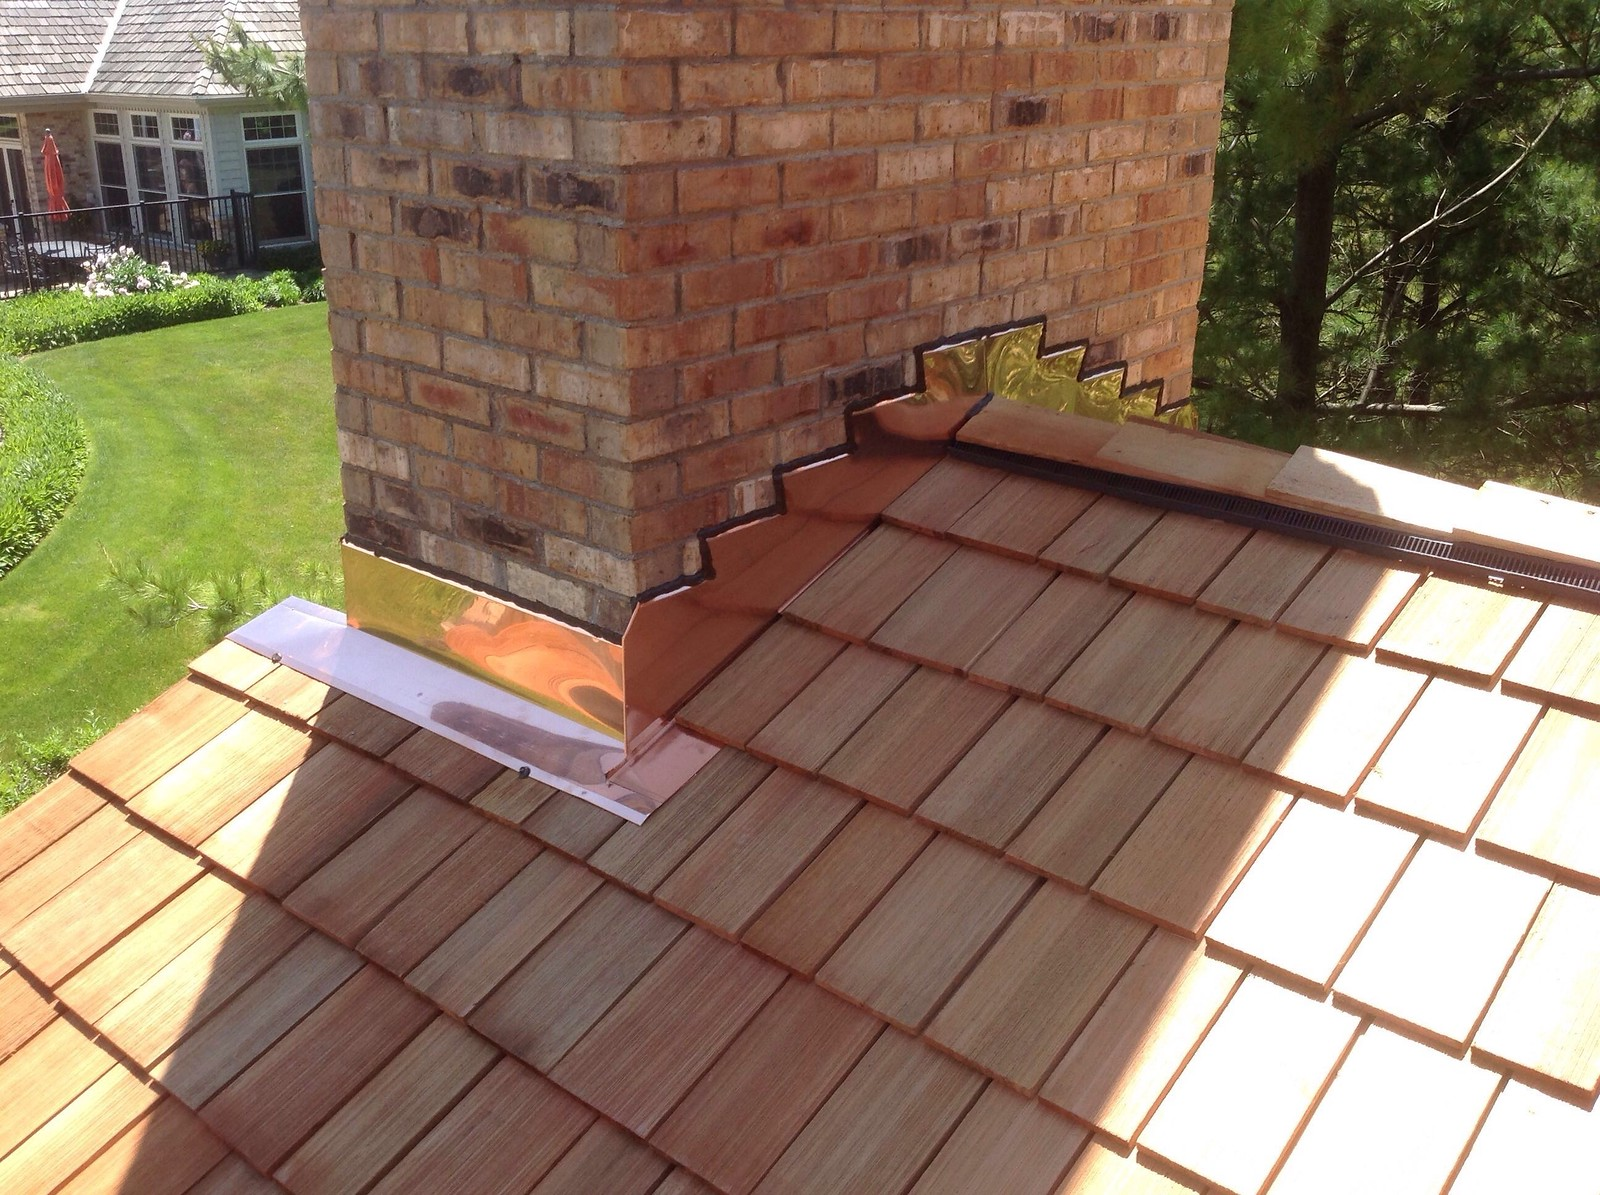 Deerfield IL Cedar Shake Roofing Installation and Repair